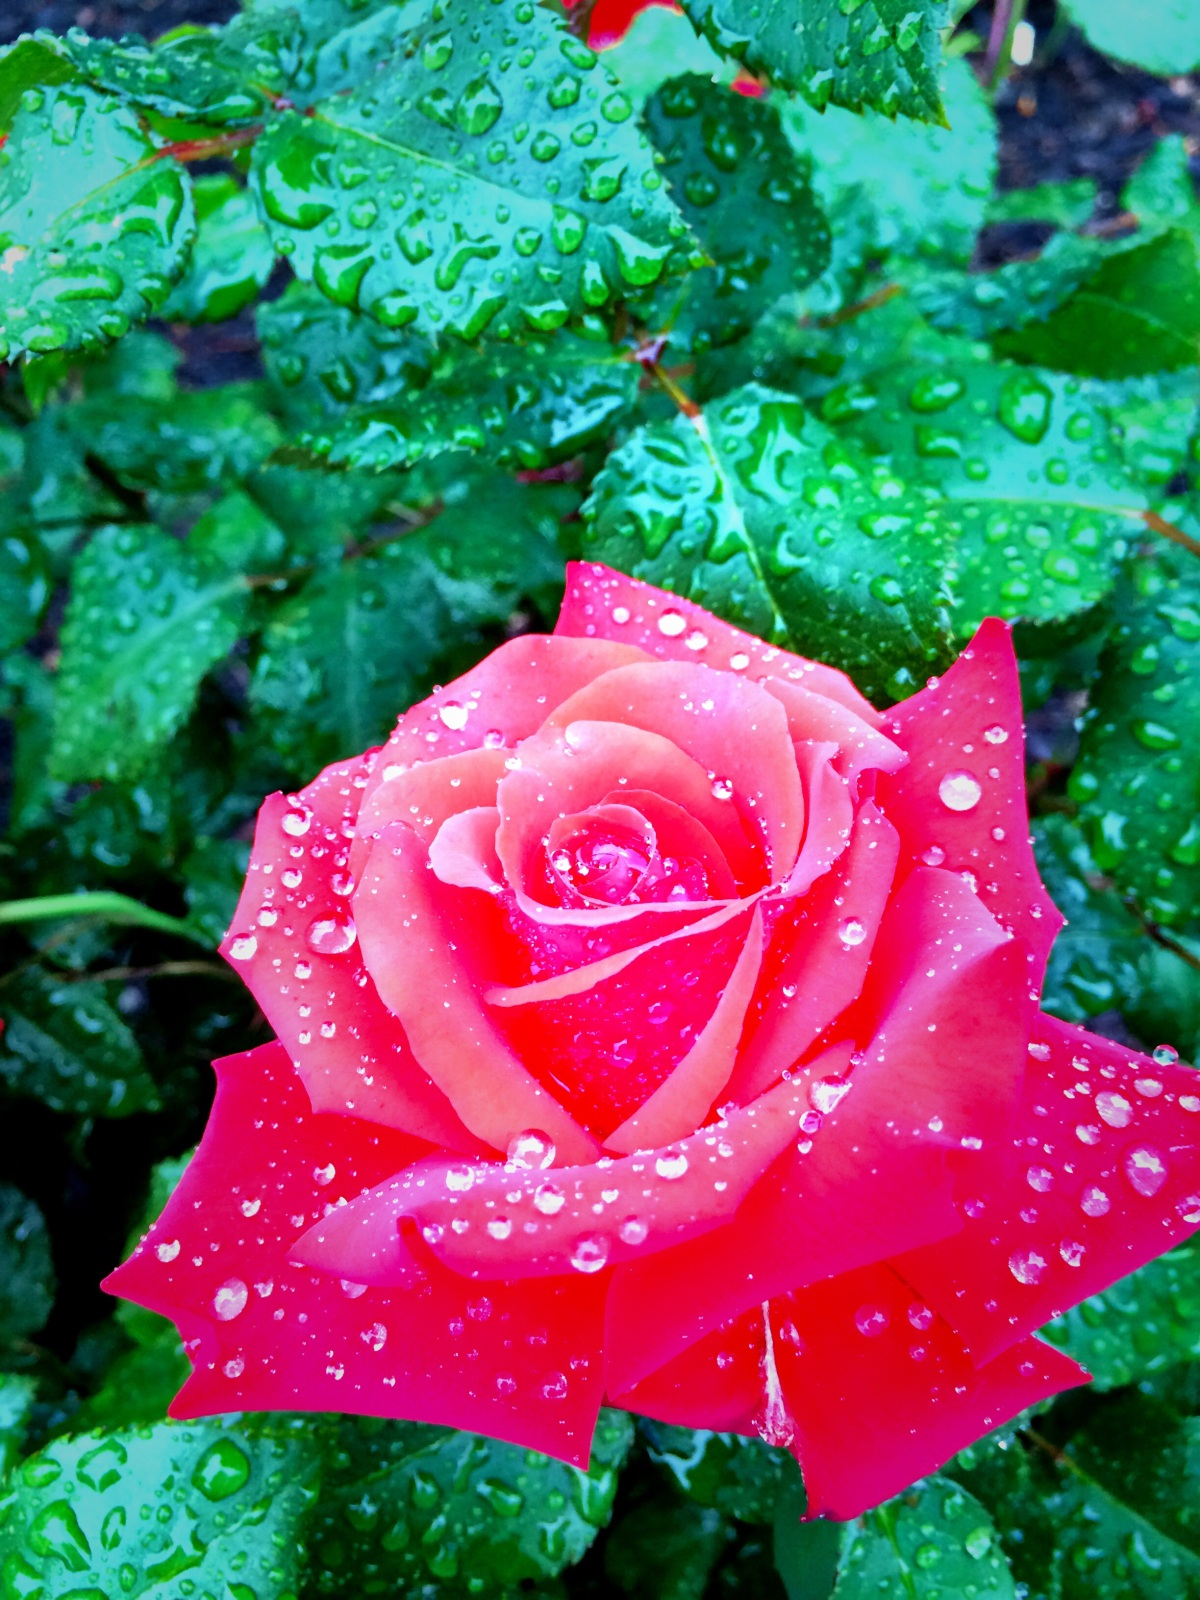 How can one not fall in love oh my rose #Iphoneography #photography#rain